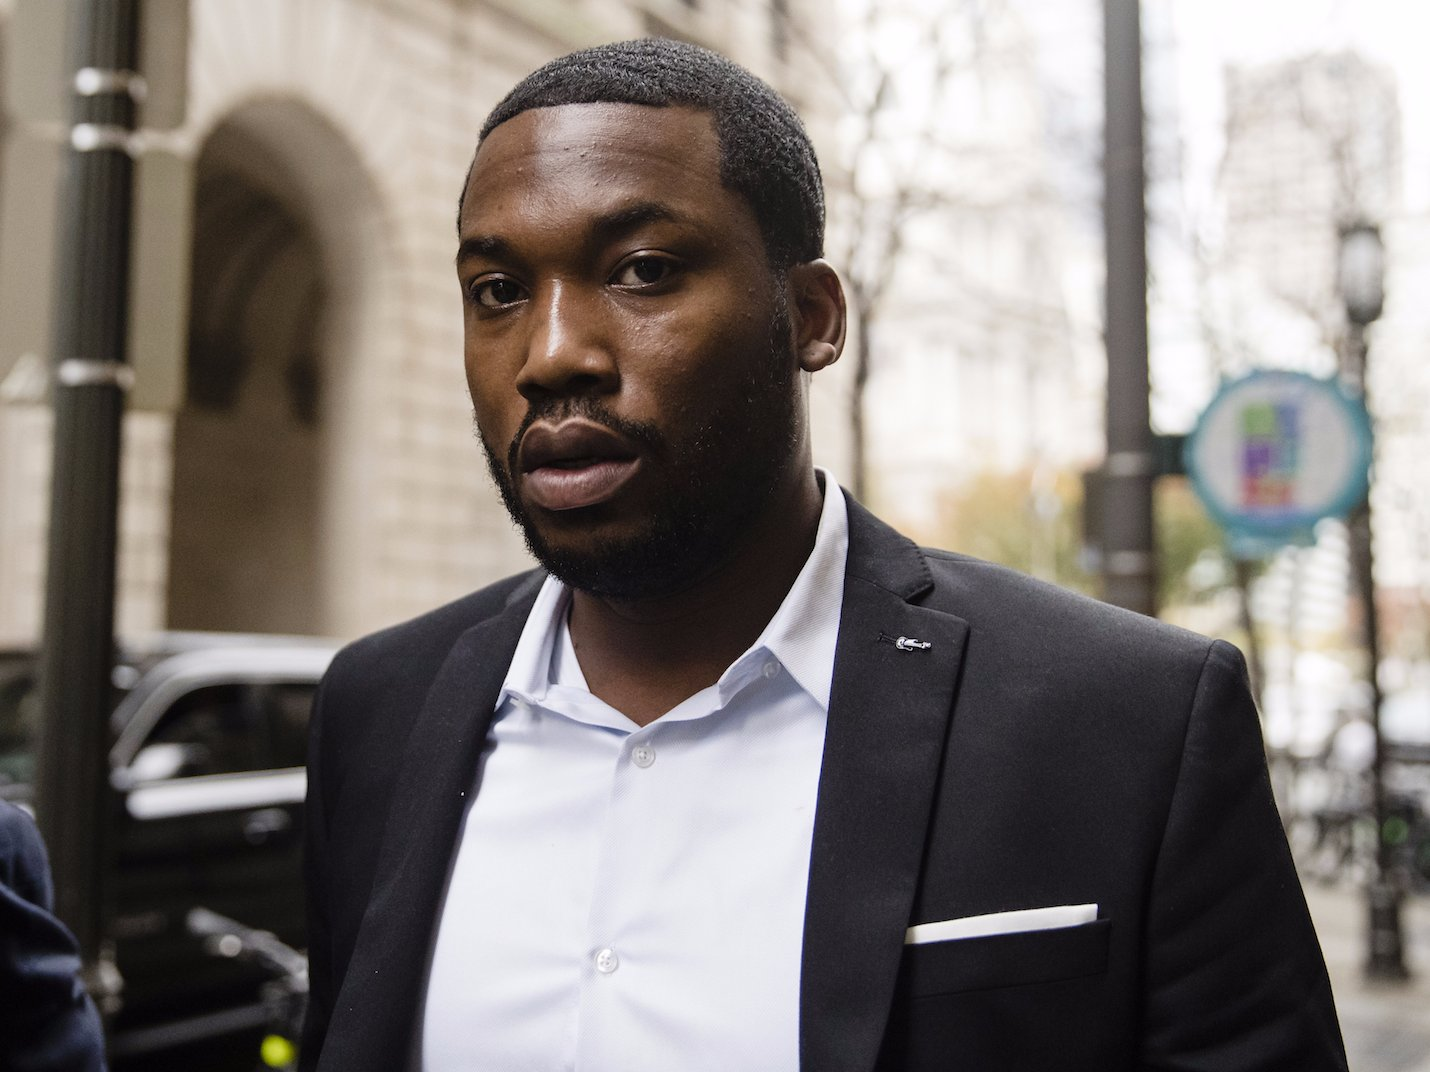 There's Now a Petition to Prevent Meek Mill From Going to Prison